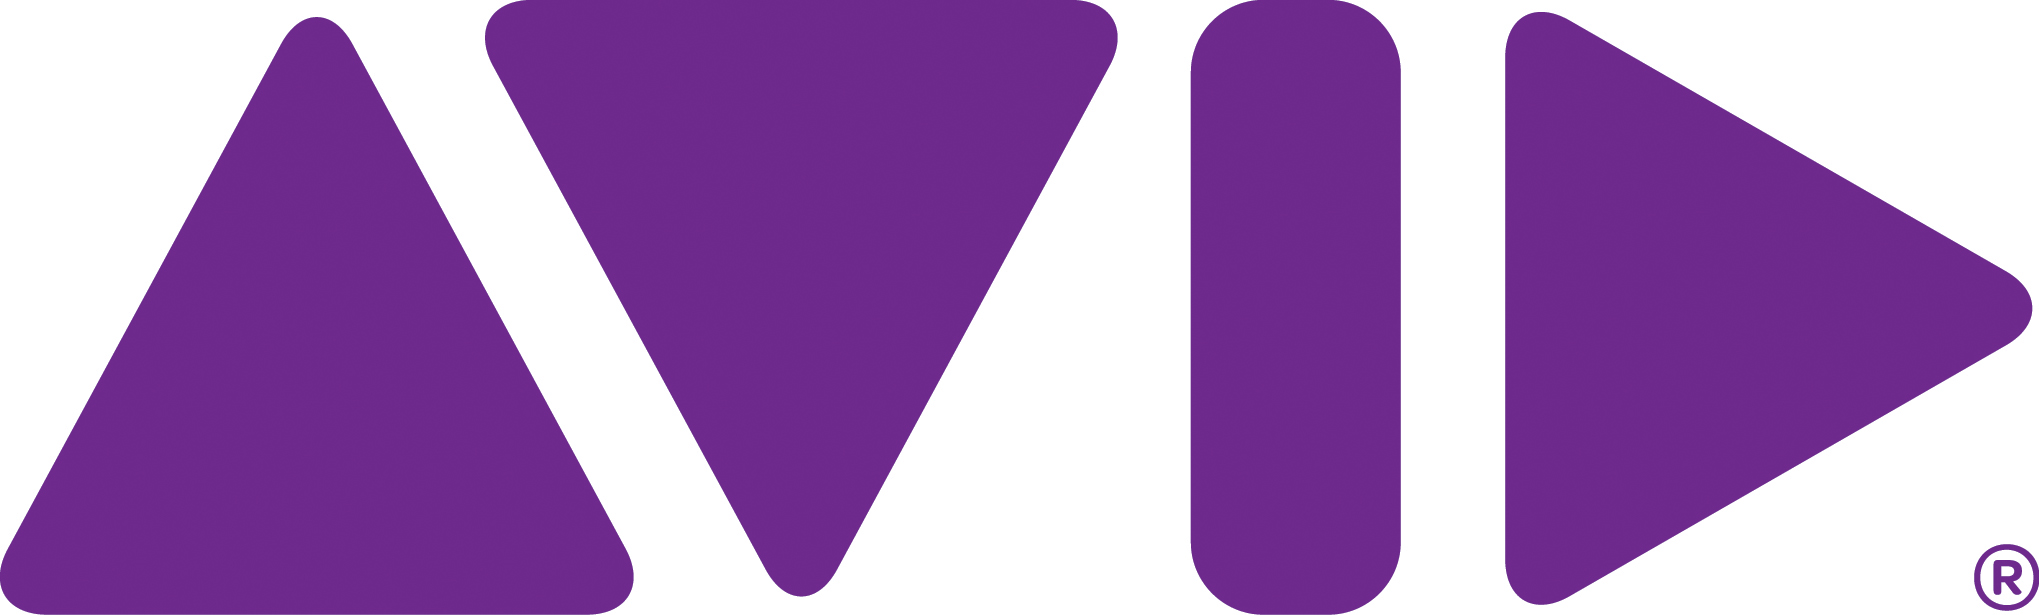 Avid NEXIS Media Storage Seeing Strong Customer Adoption